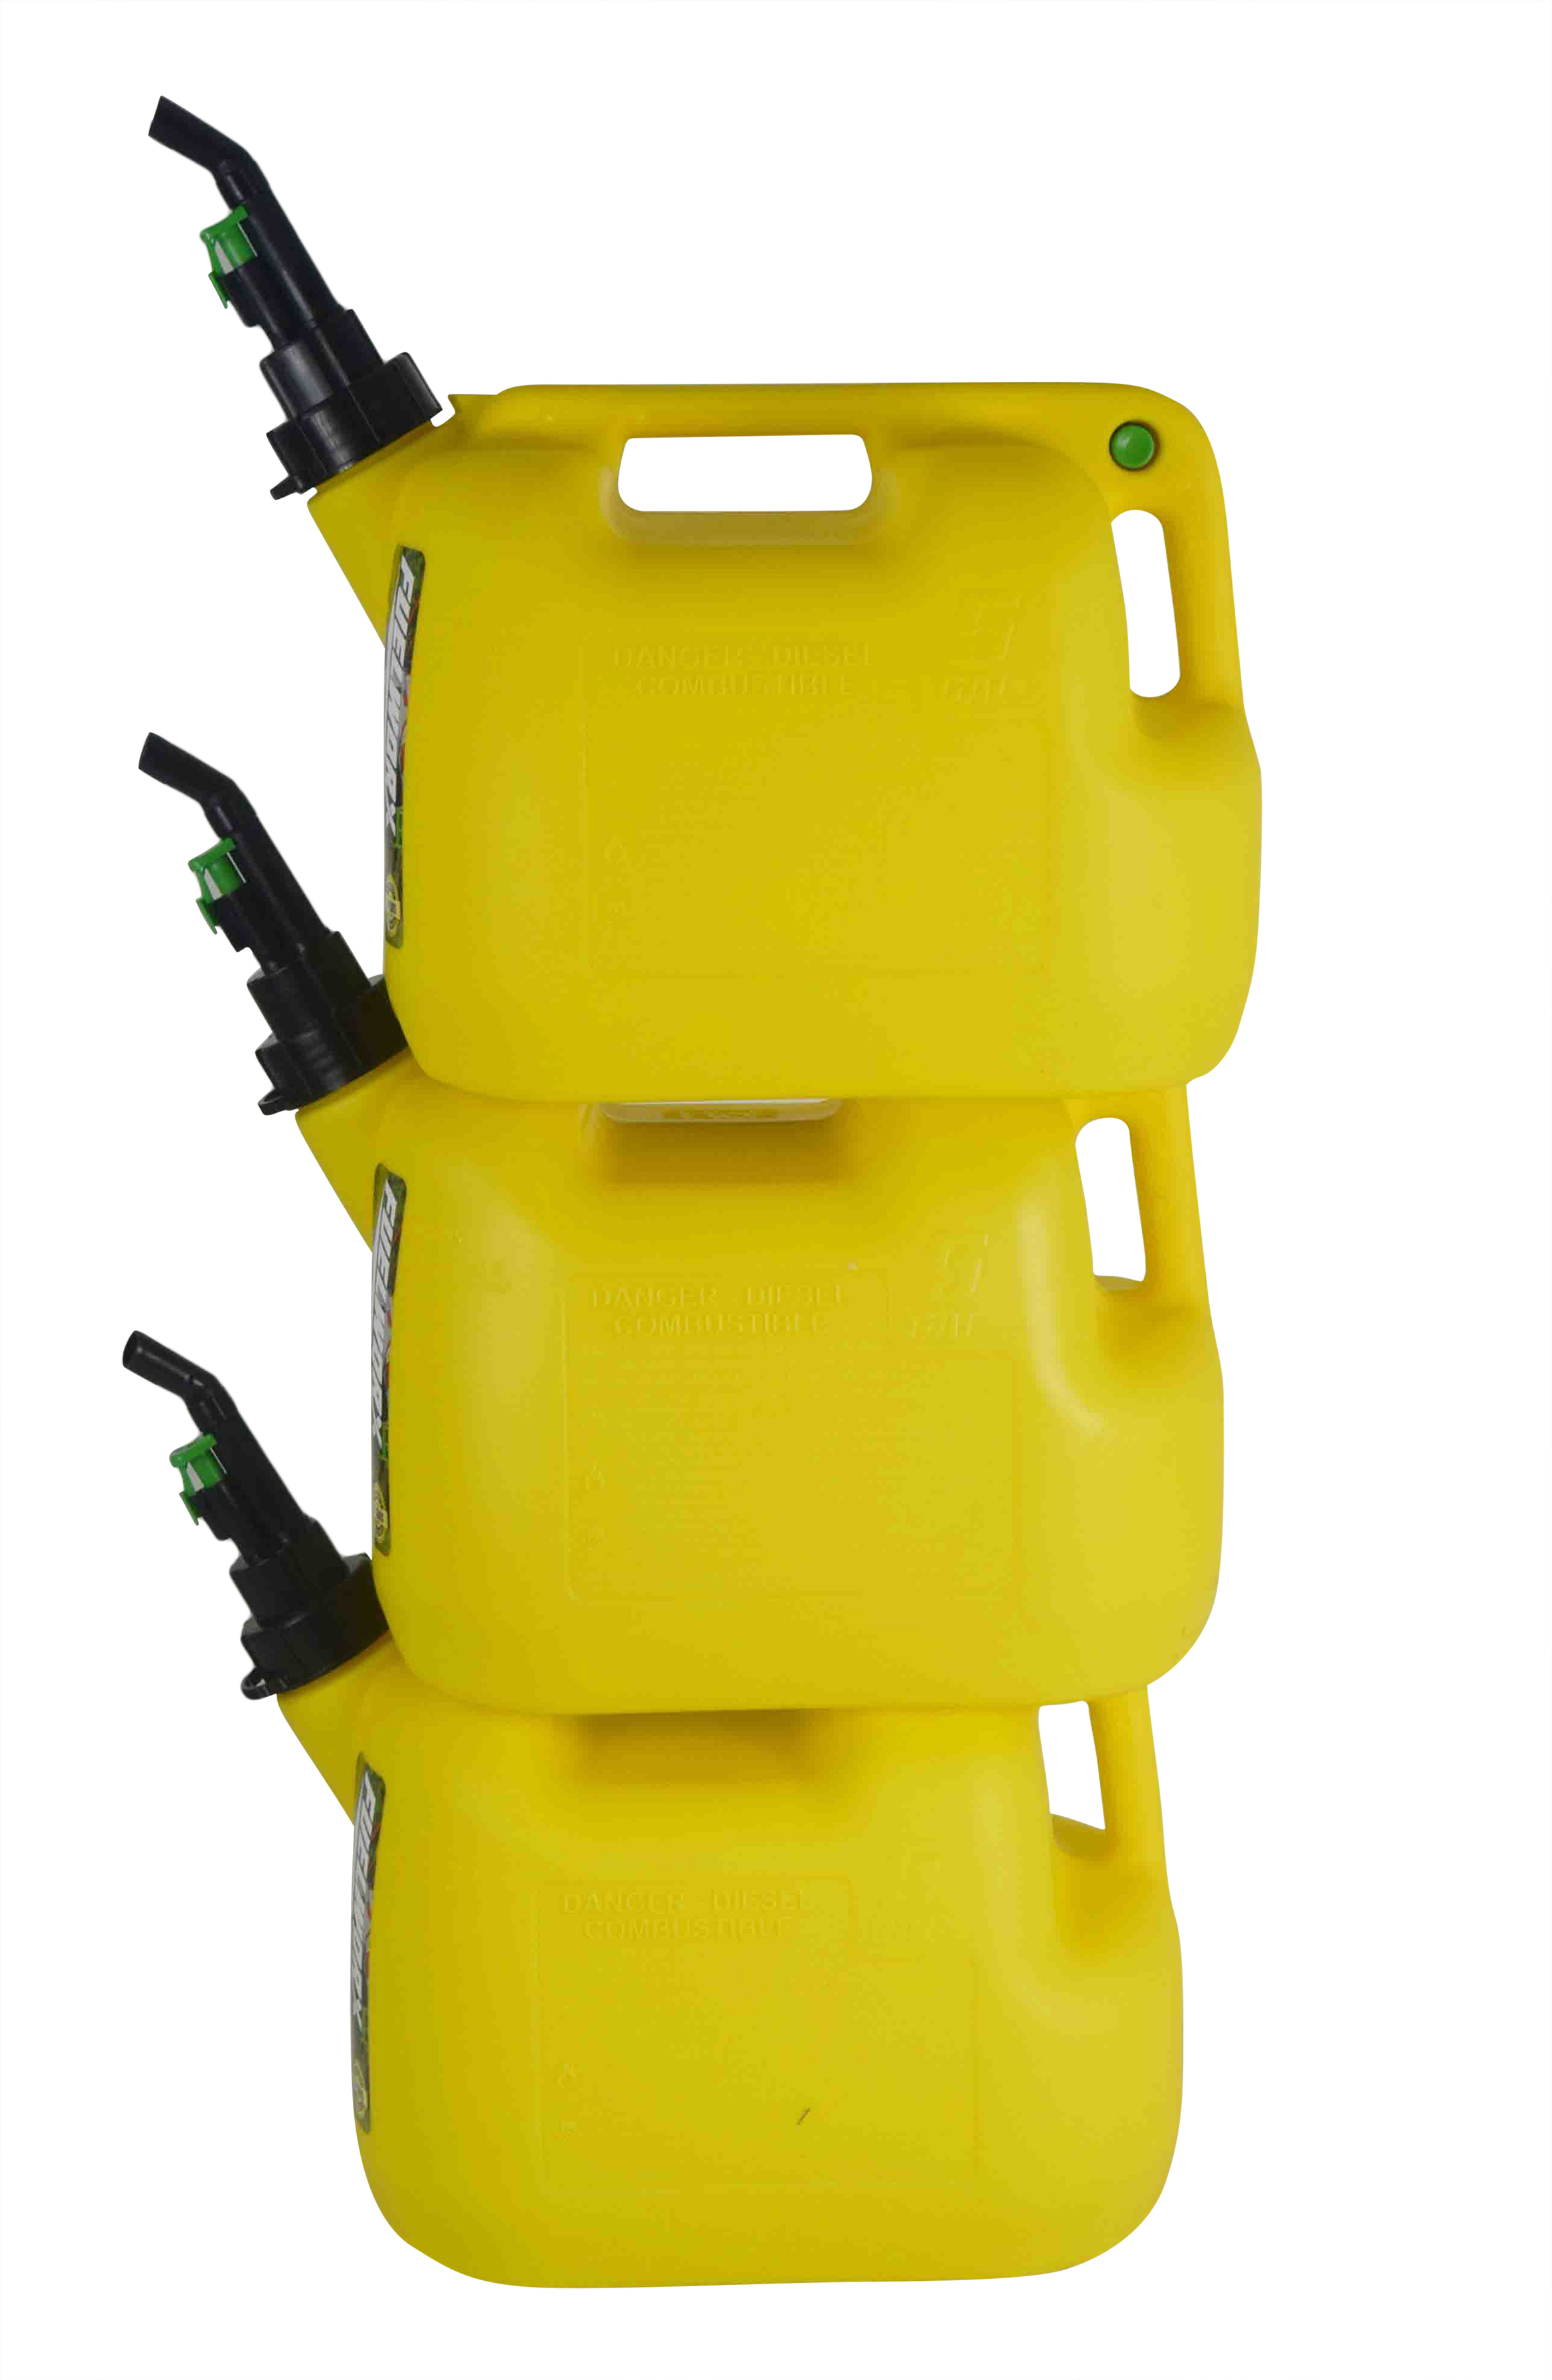 Fuelworx-Yellow-5-Gallon-Stackable-Fast-Pour-Diesel-Fuel-Cans-CARB-Compliant-Made-in-The-USA-5-Gallon-Diesel-Cans-3-Pack-image-1